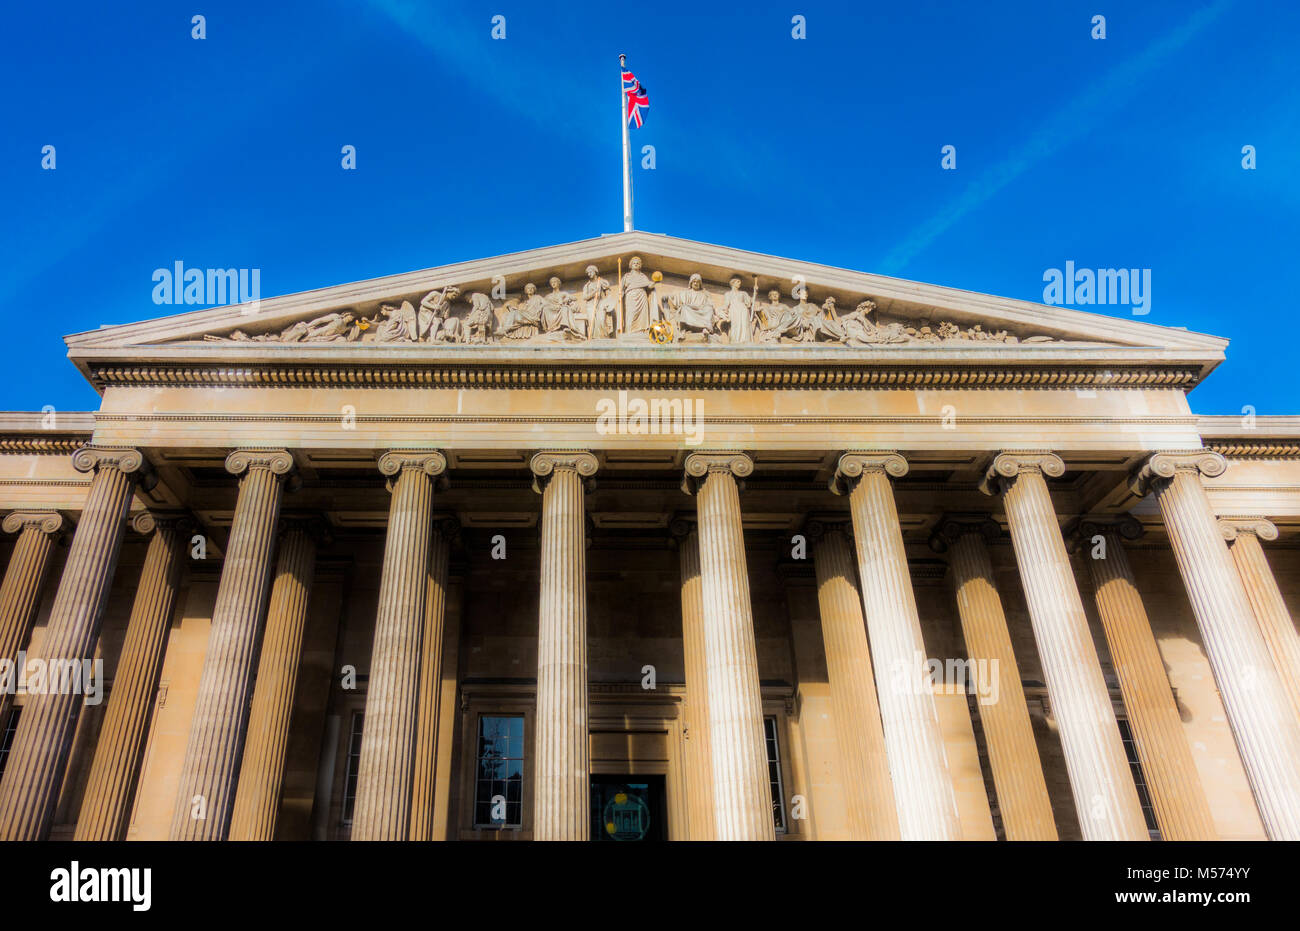 Closeup of portico and pediment sculptures at main entrance of British Museum (dedicated to human history, art and - Stock Image